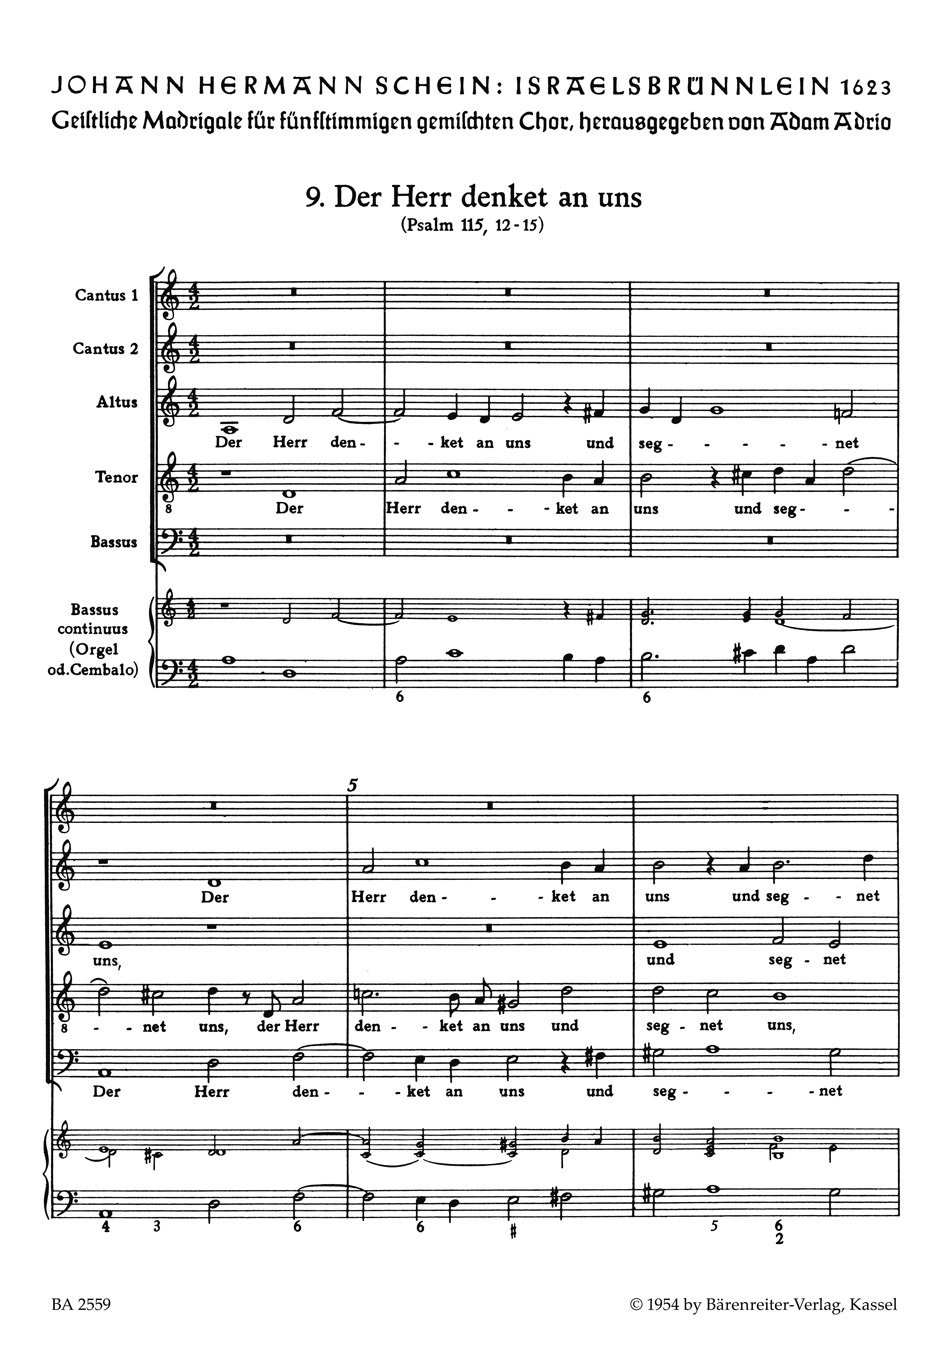 Humble The Paul Mealor Collection Favourite Anthems & Partsongs Choir Music Book Satb Contemporary